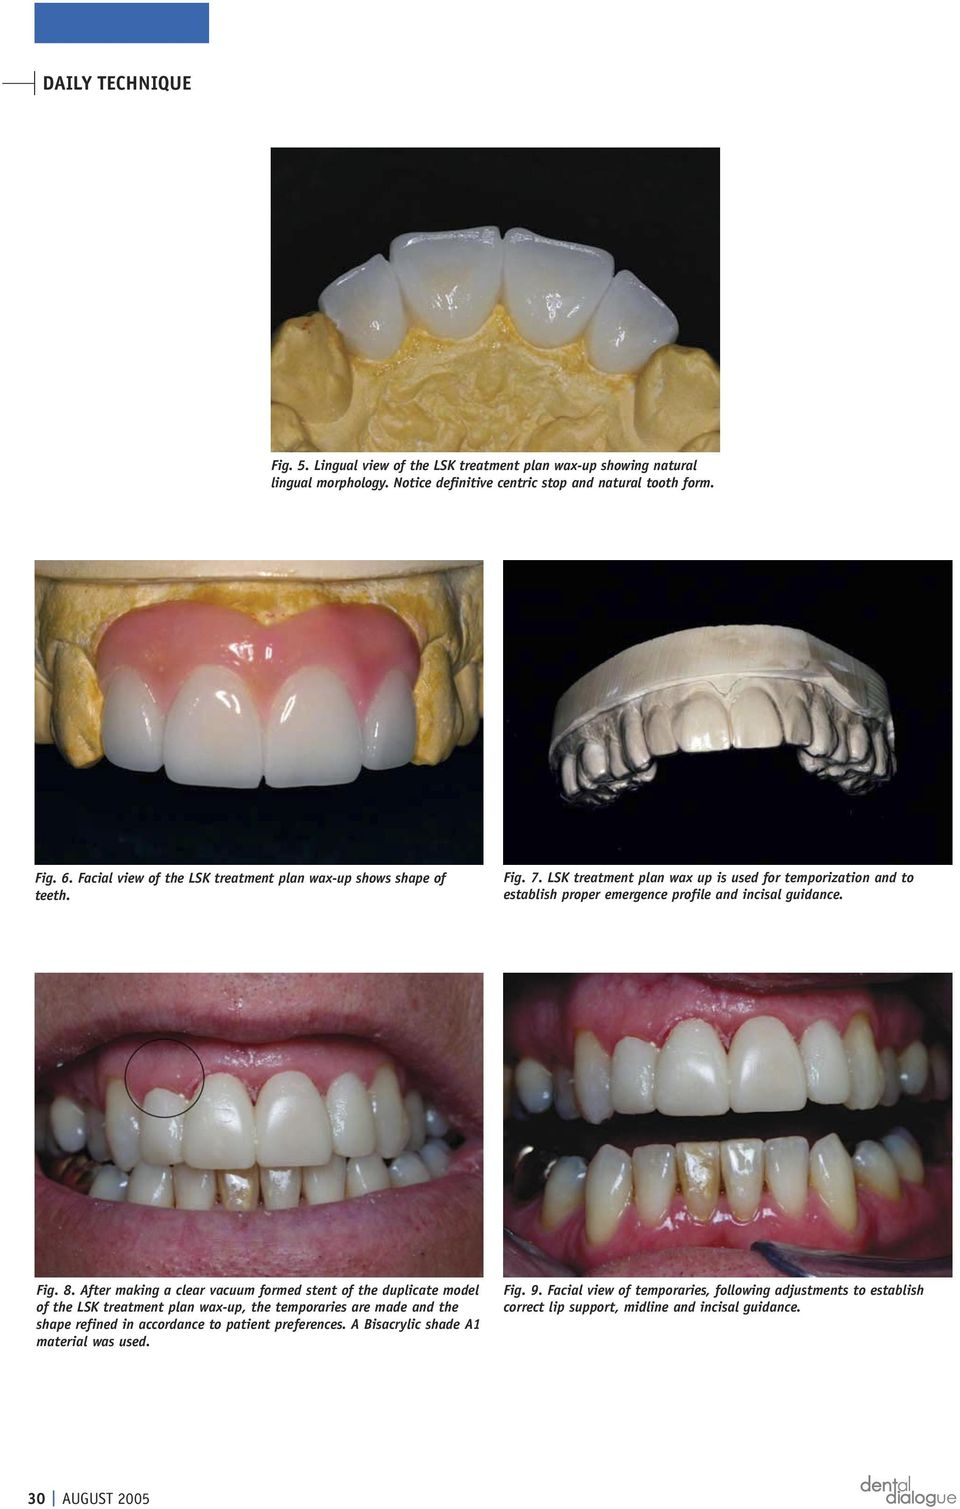 LSK treatment plan wax up is used for temporization and to establish proper emergence profile and incisal guidance. Fig. 8.